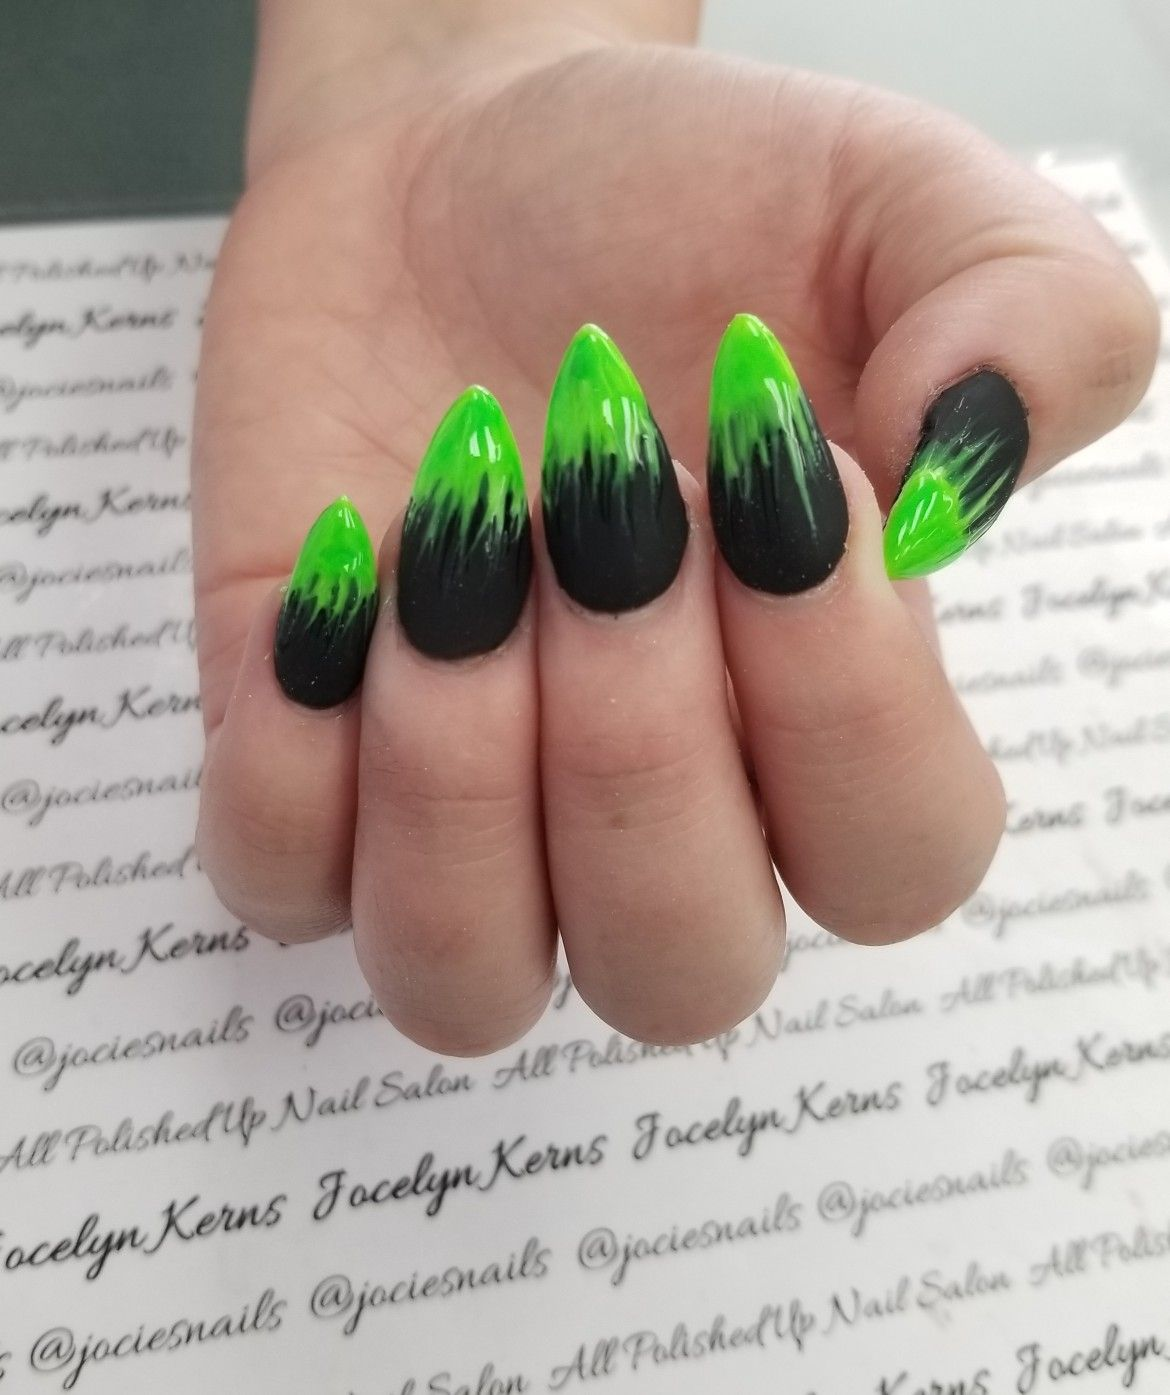 Poison Ivy Nails Poison Dipped Nails Halloween Nails Black And Green Stiletto Nails Dipped Nails Poison Ivy Nails Halloween Nails